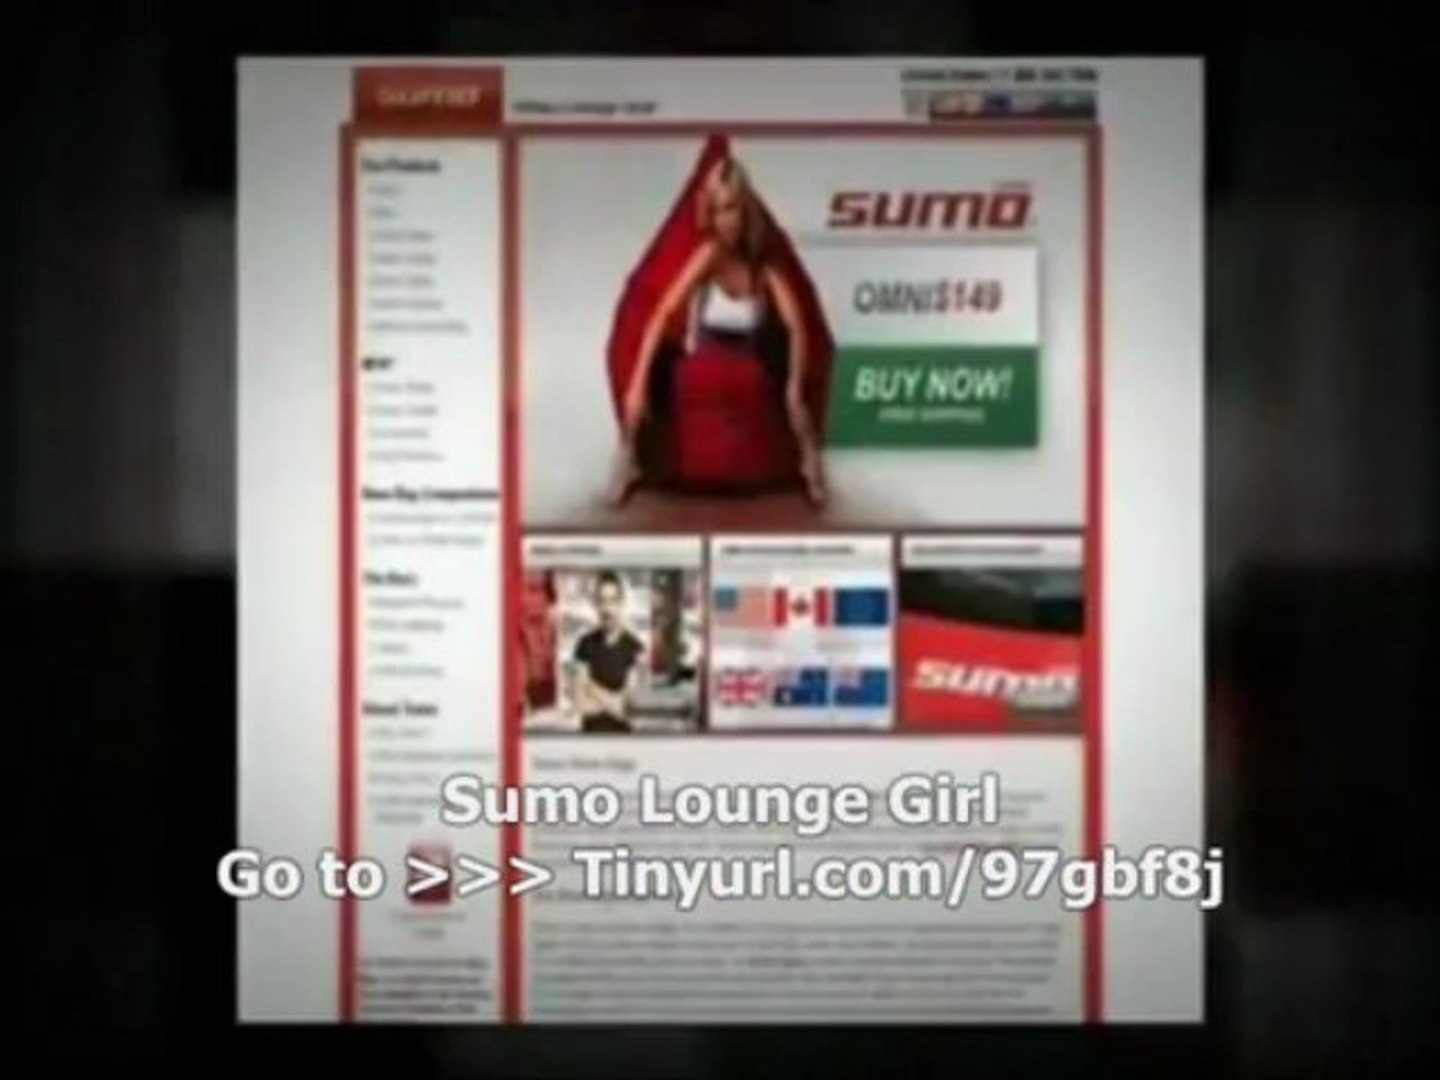 Sumo Lounge Girl | Promotion Code Sumo Lounge Girl